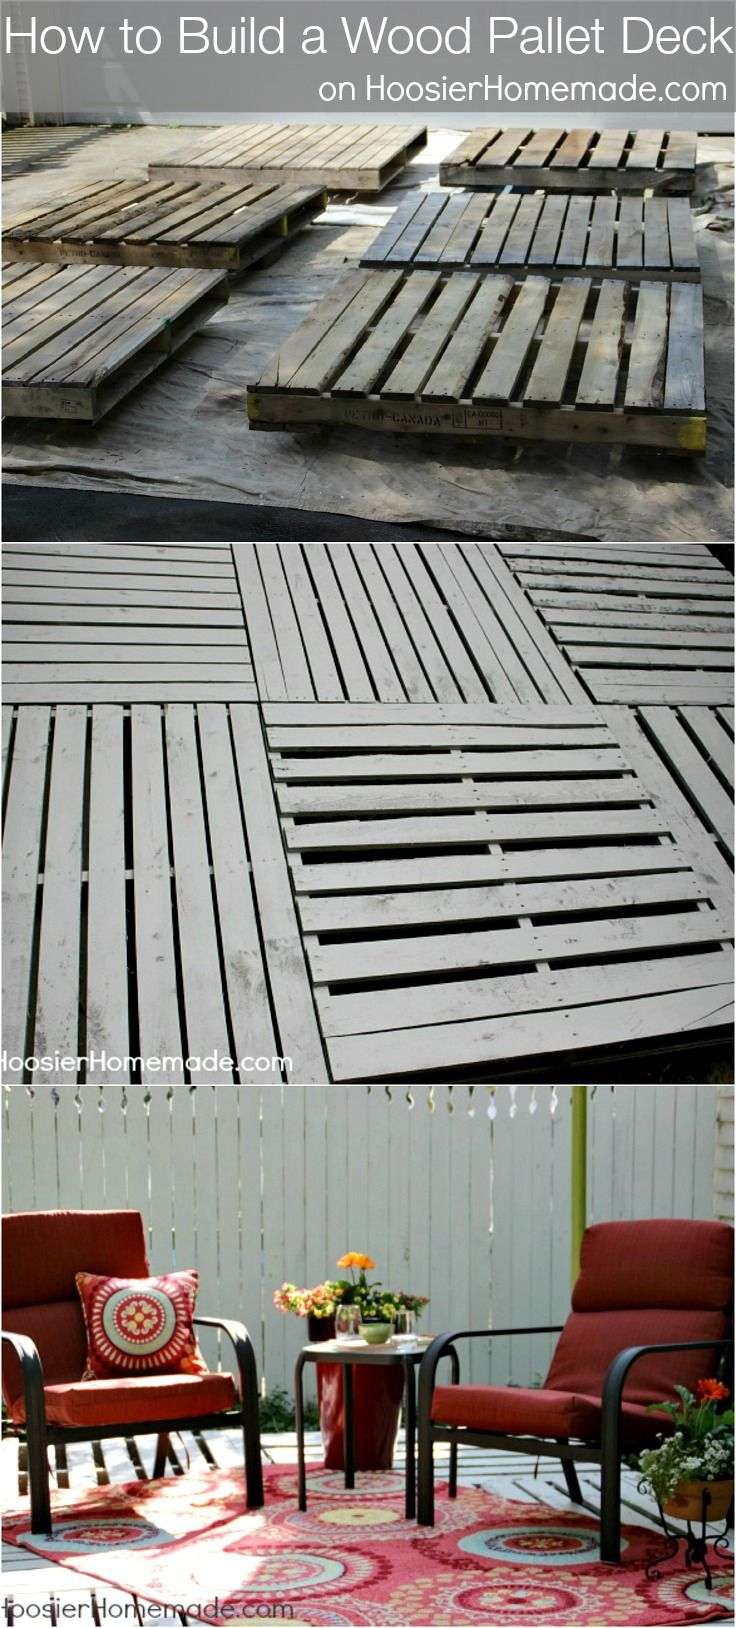 Decking Using Pallets How To Build A Wood Pallet Deck Wood Pallets Outdoor Spaces And